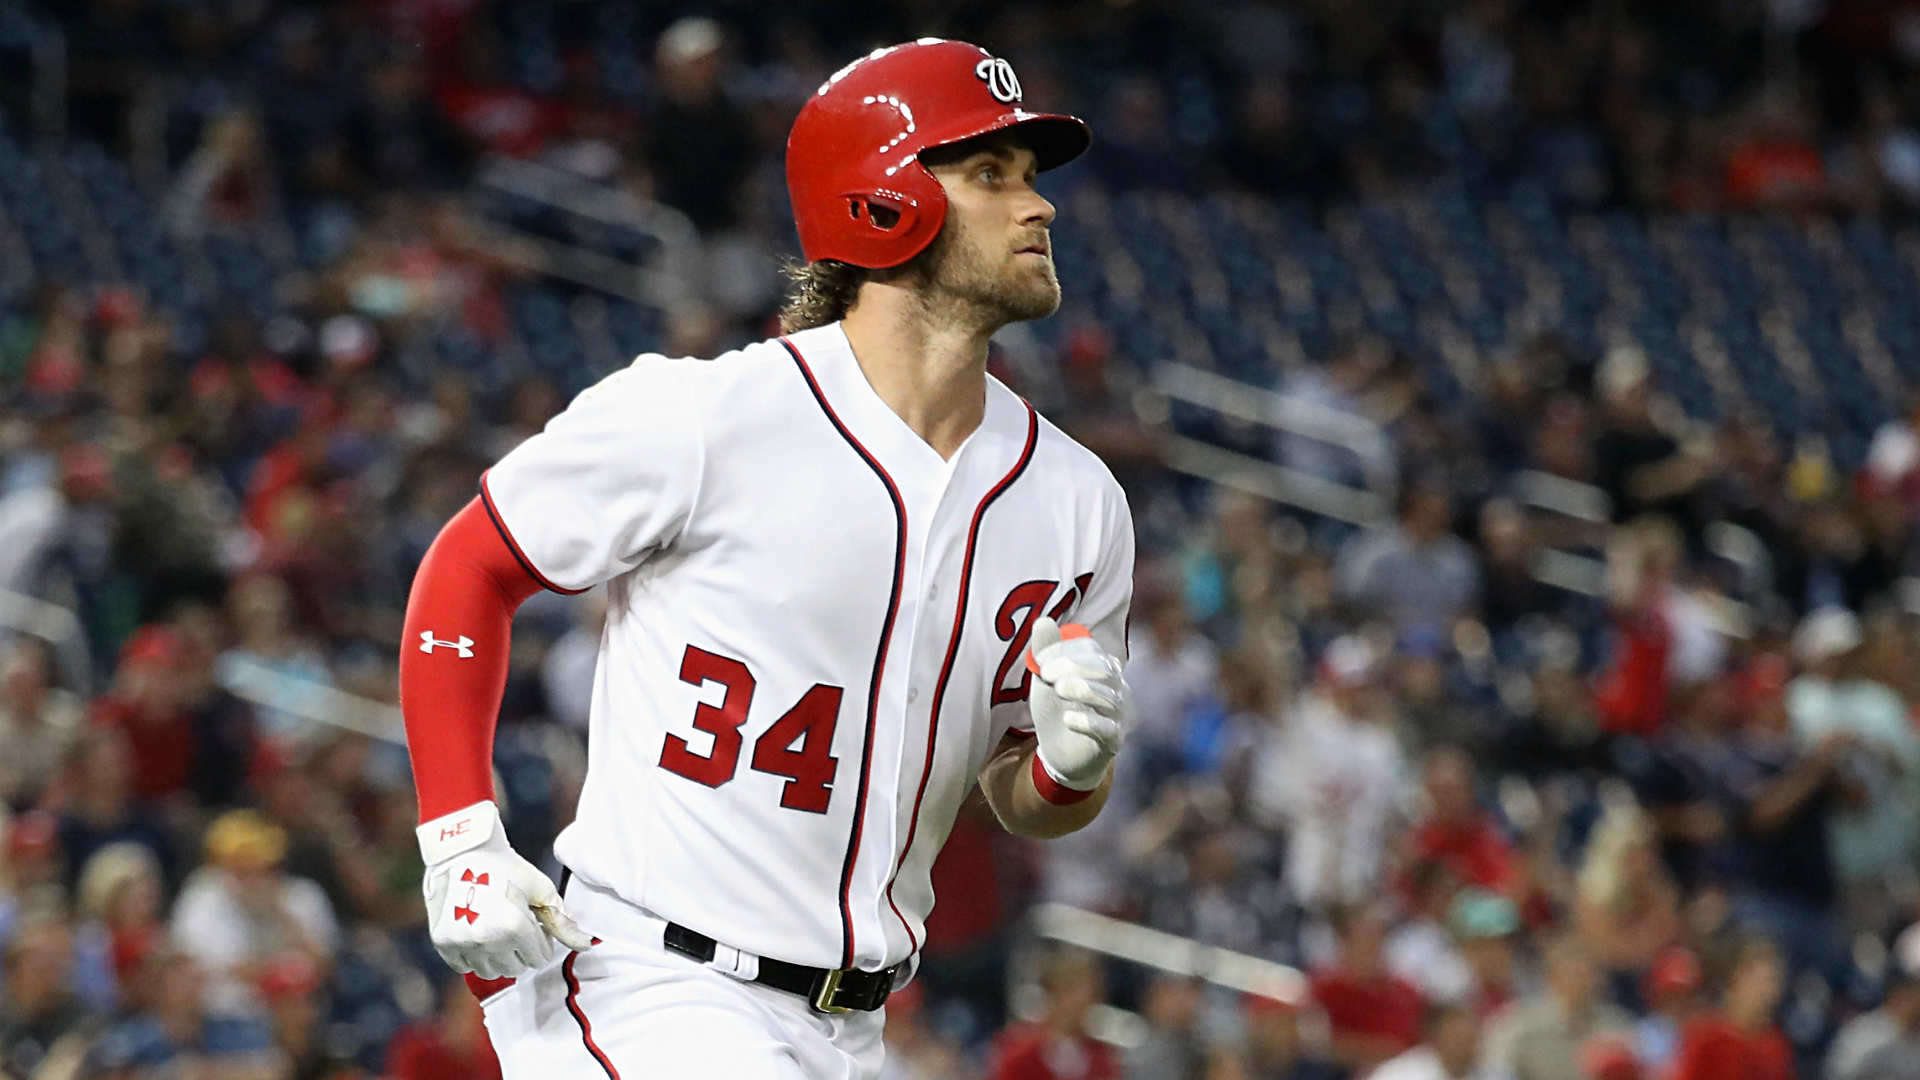 Bryce Harper Wallpapers 65 Images